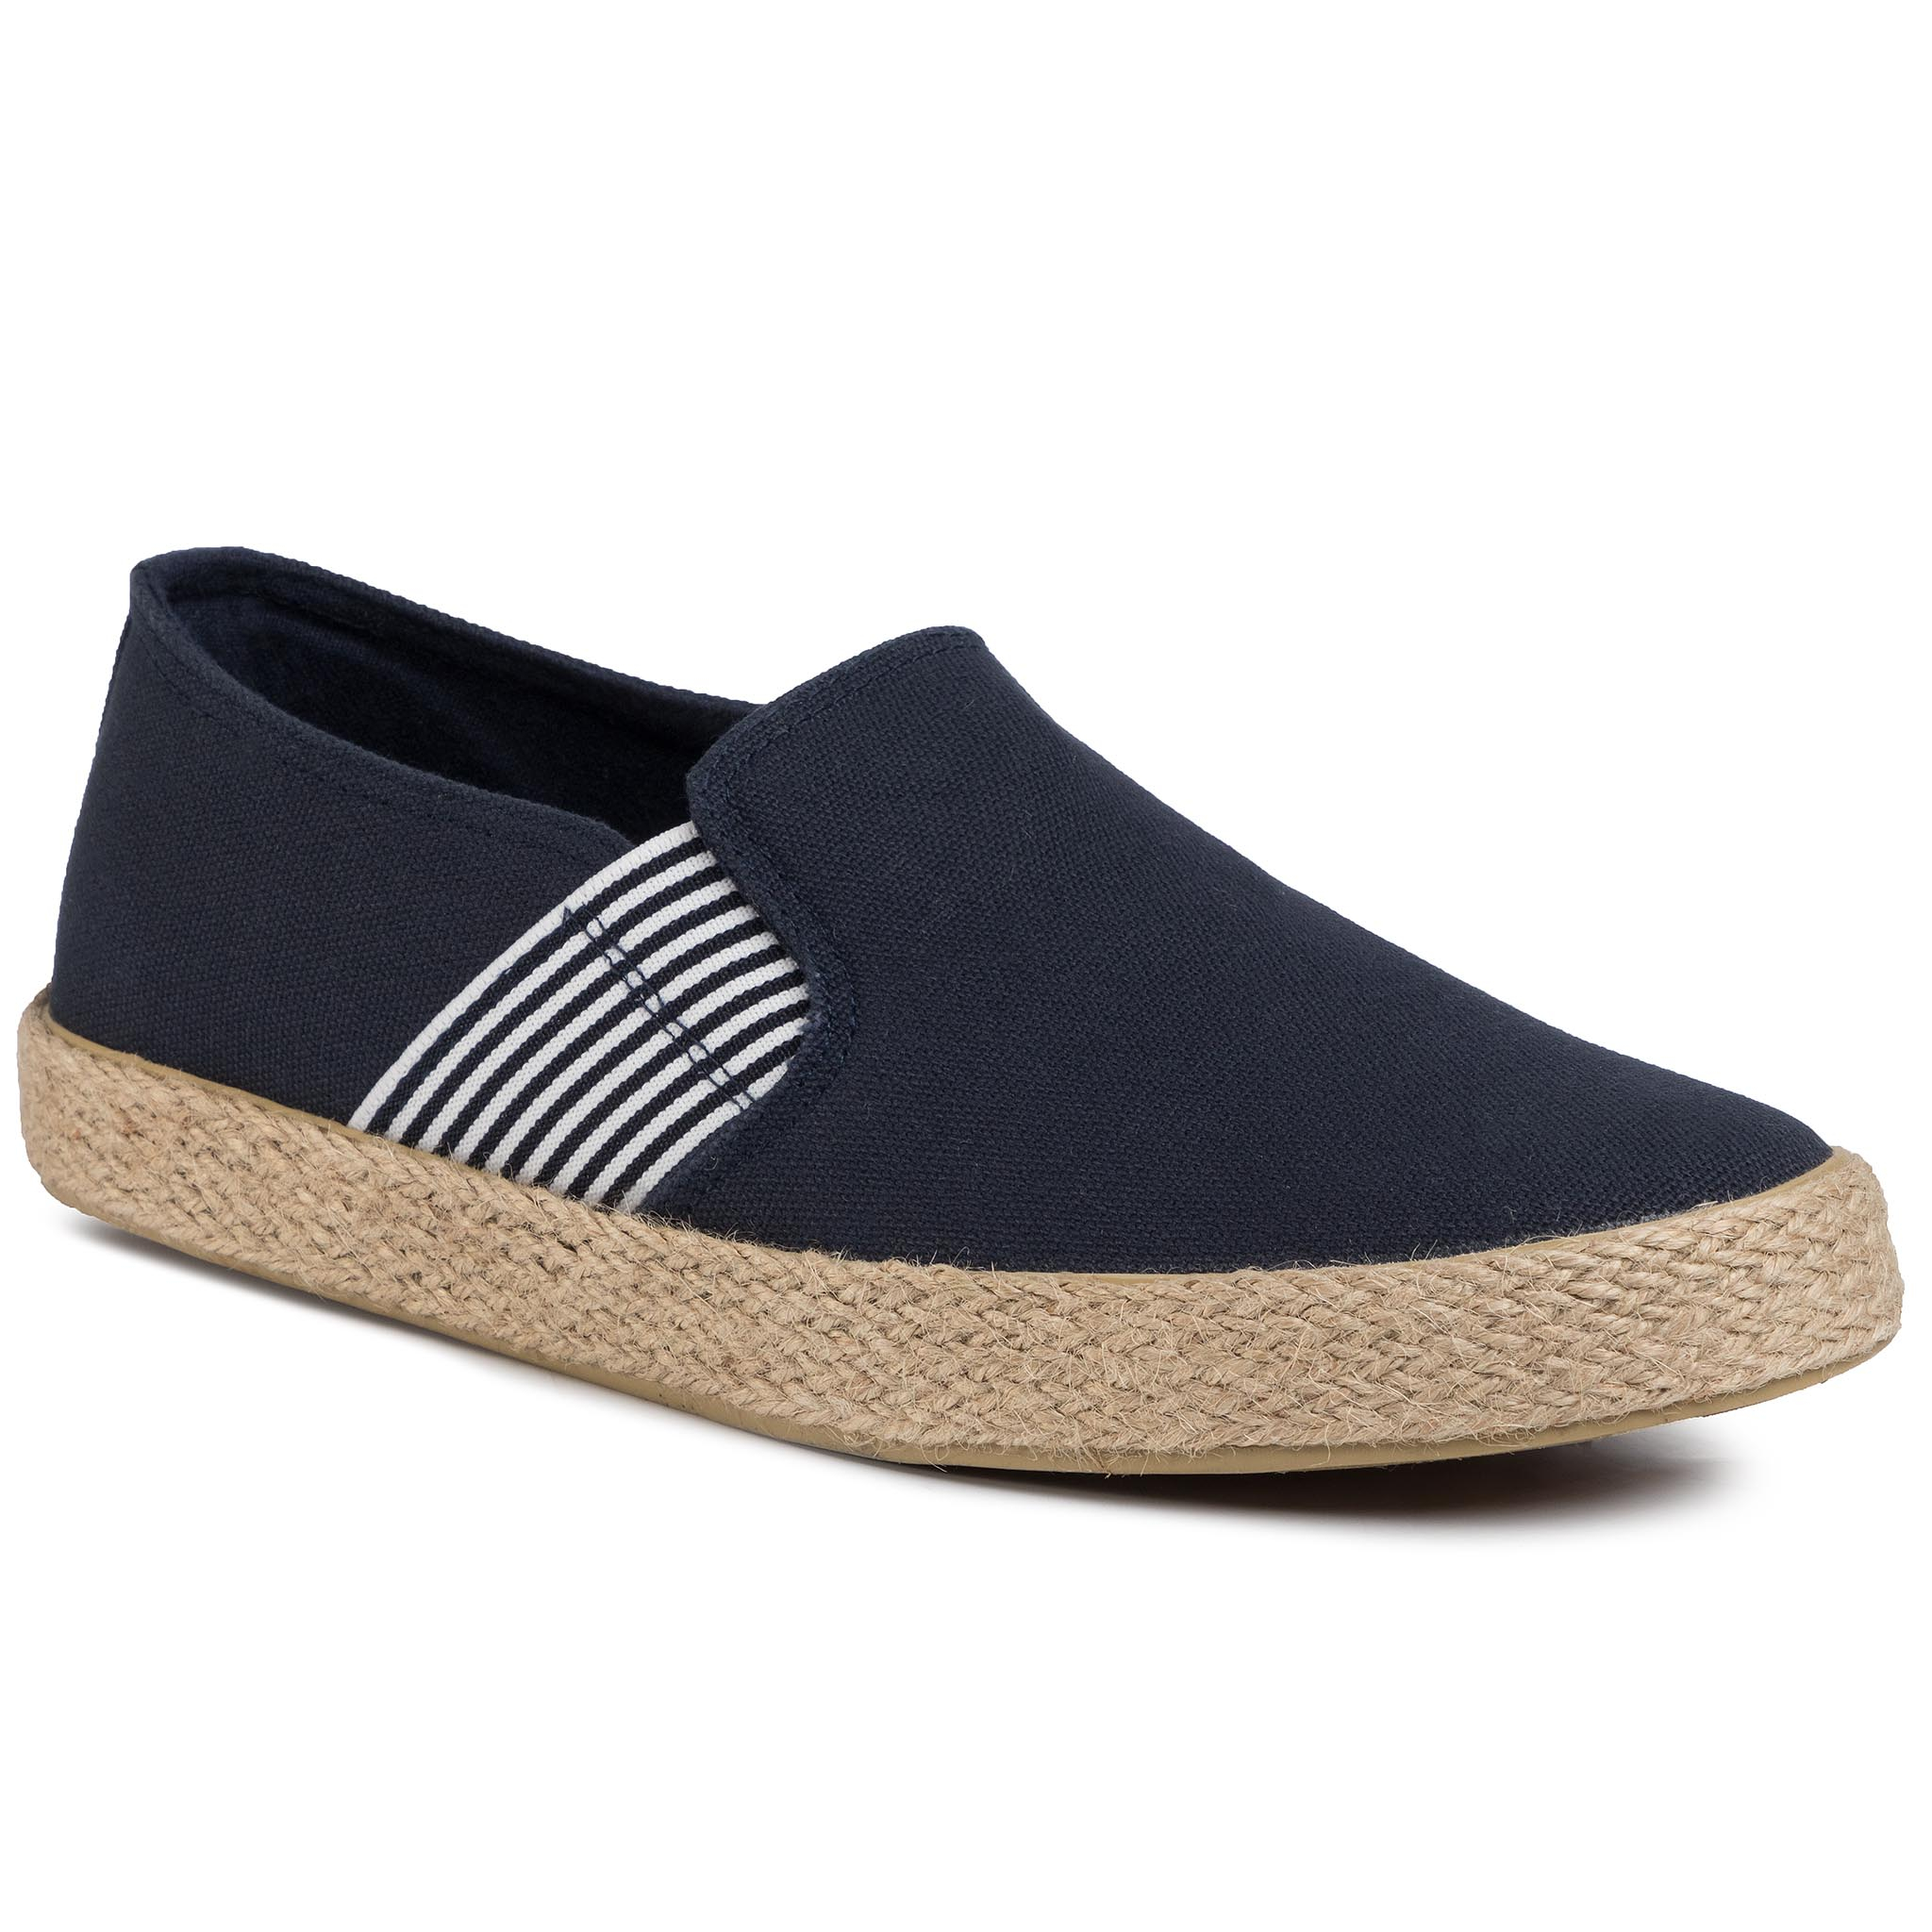 Espadrile LANETTI - MF19070-1 Navy imagine